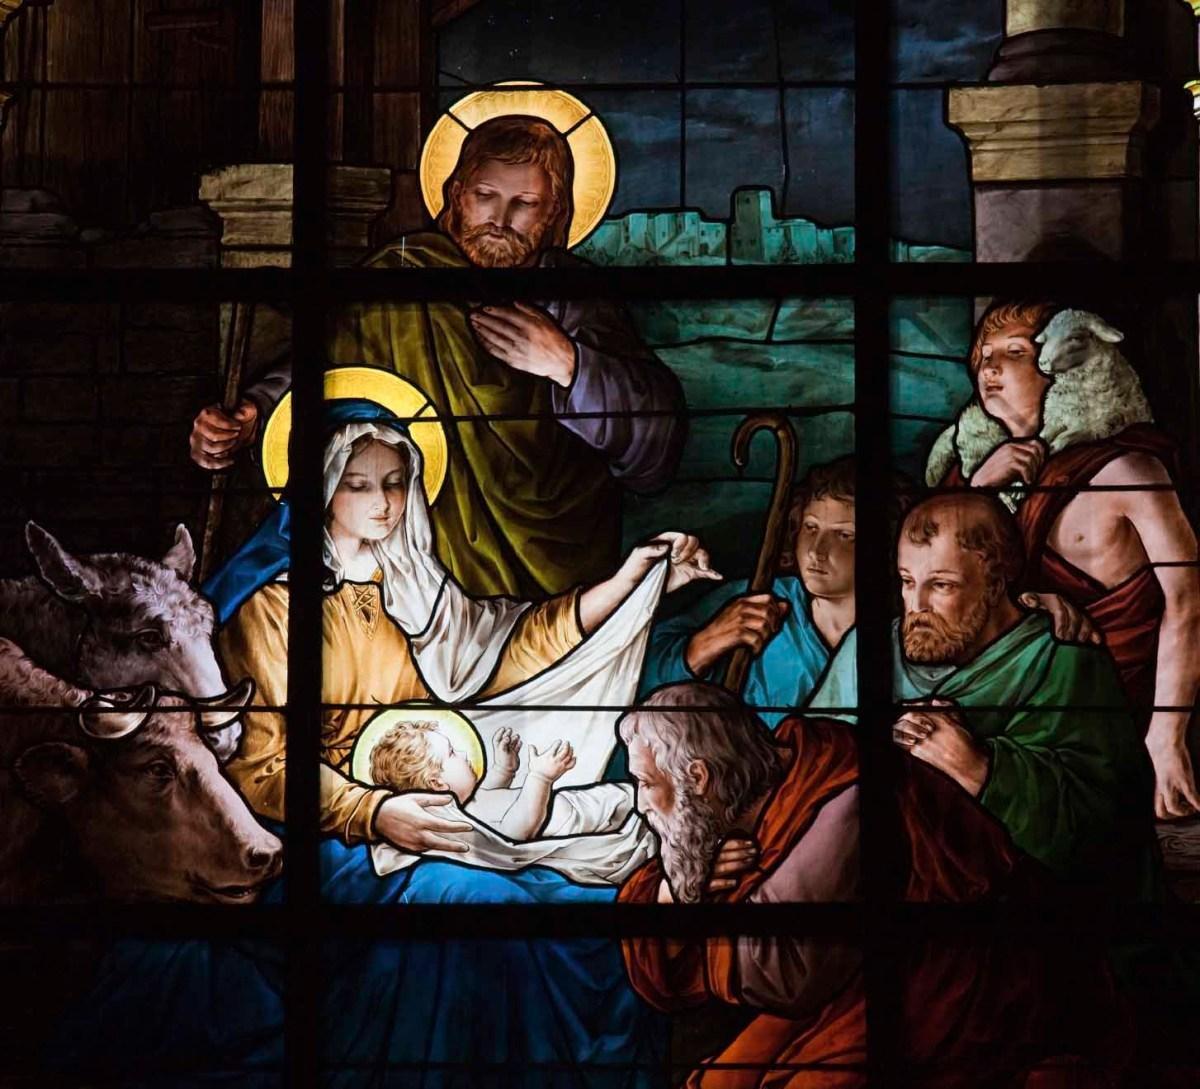 Reflections of the Manger